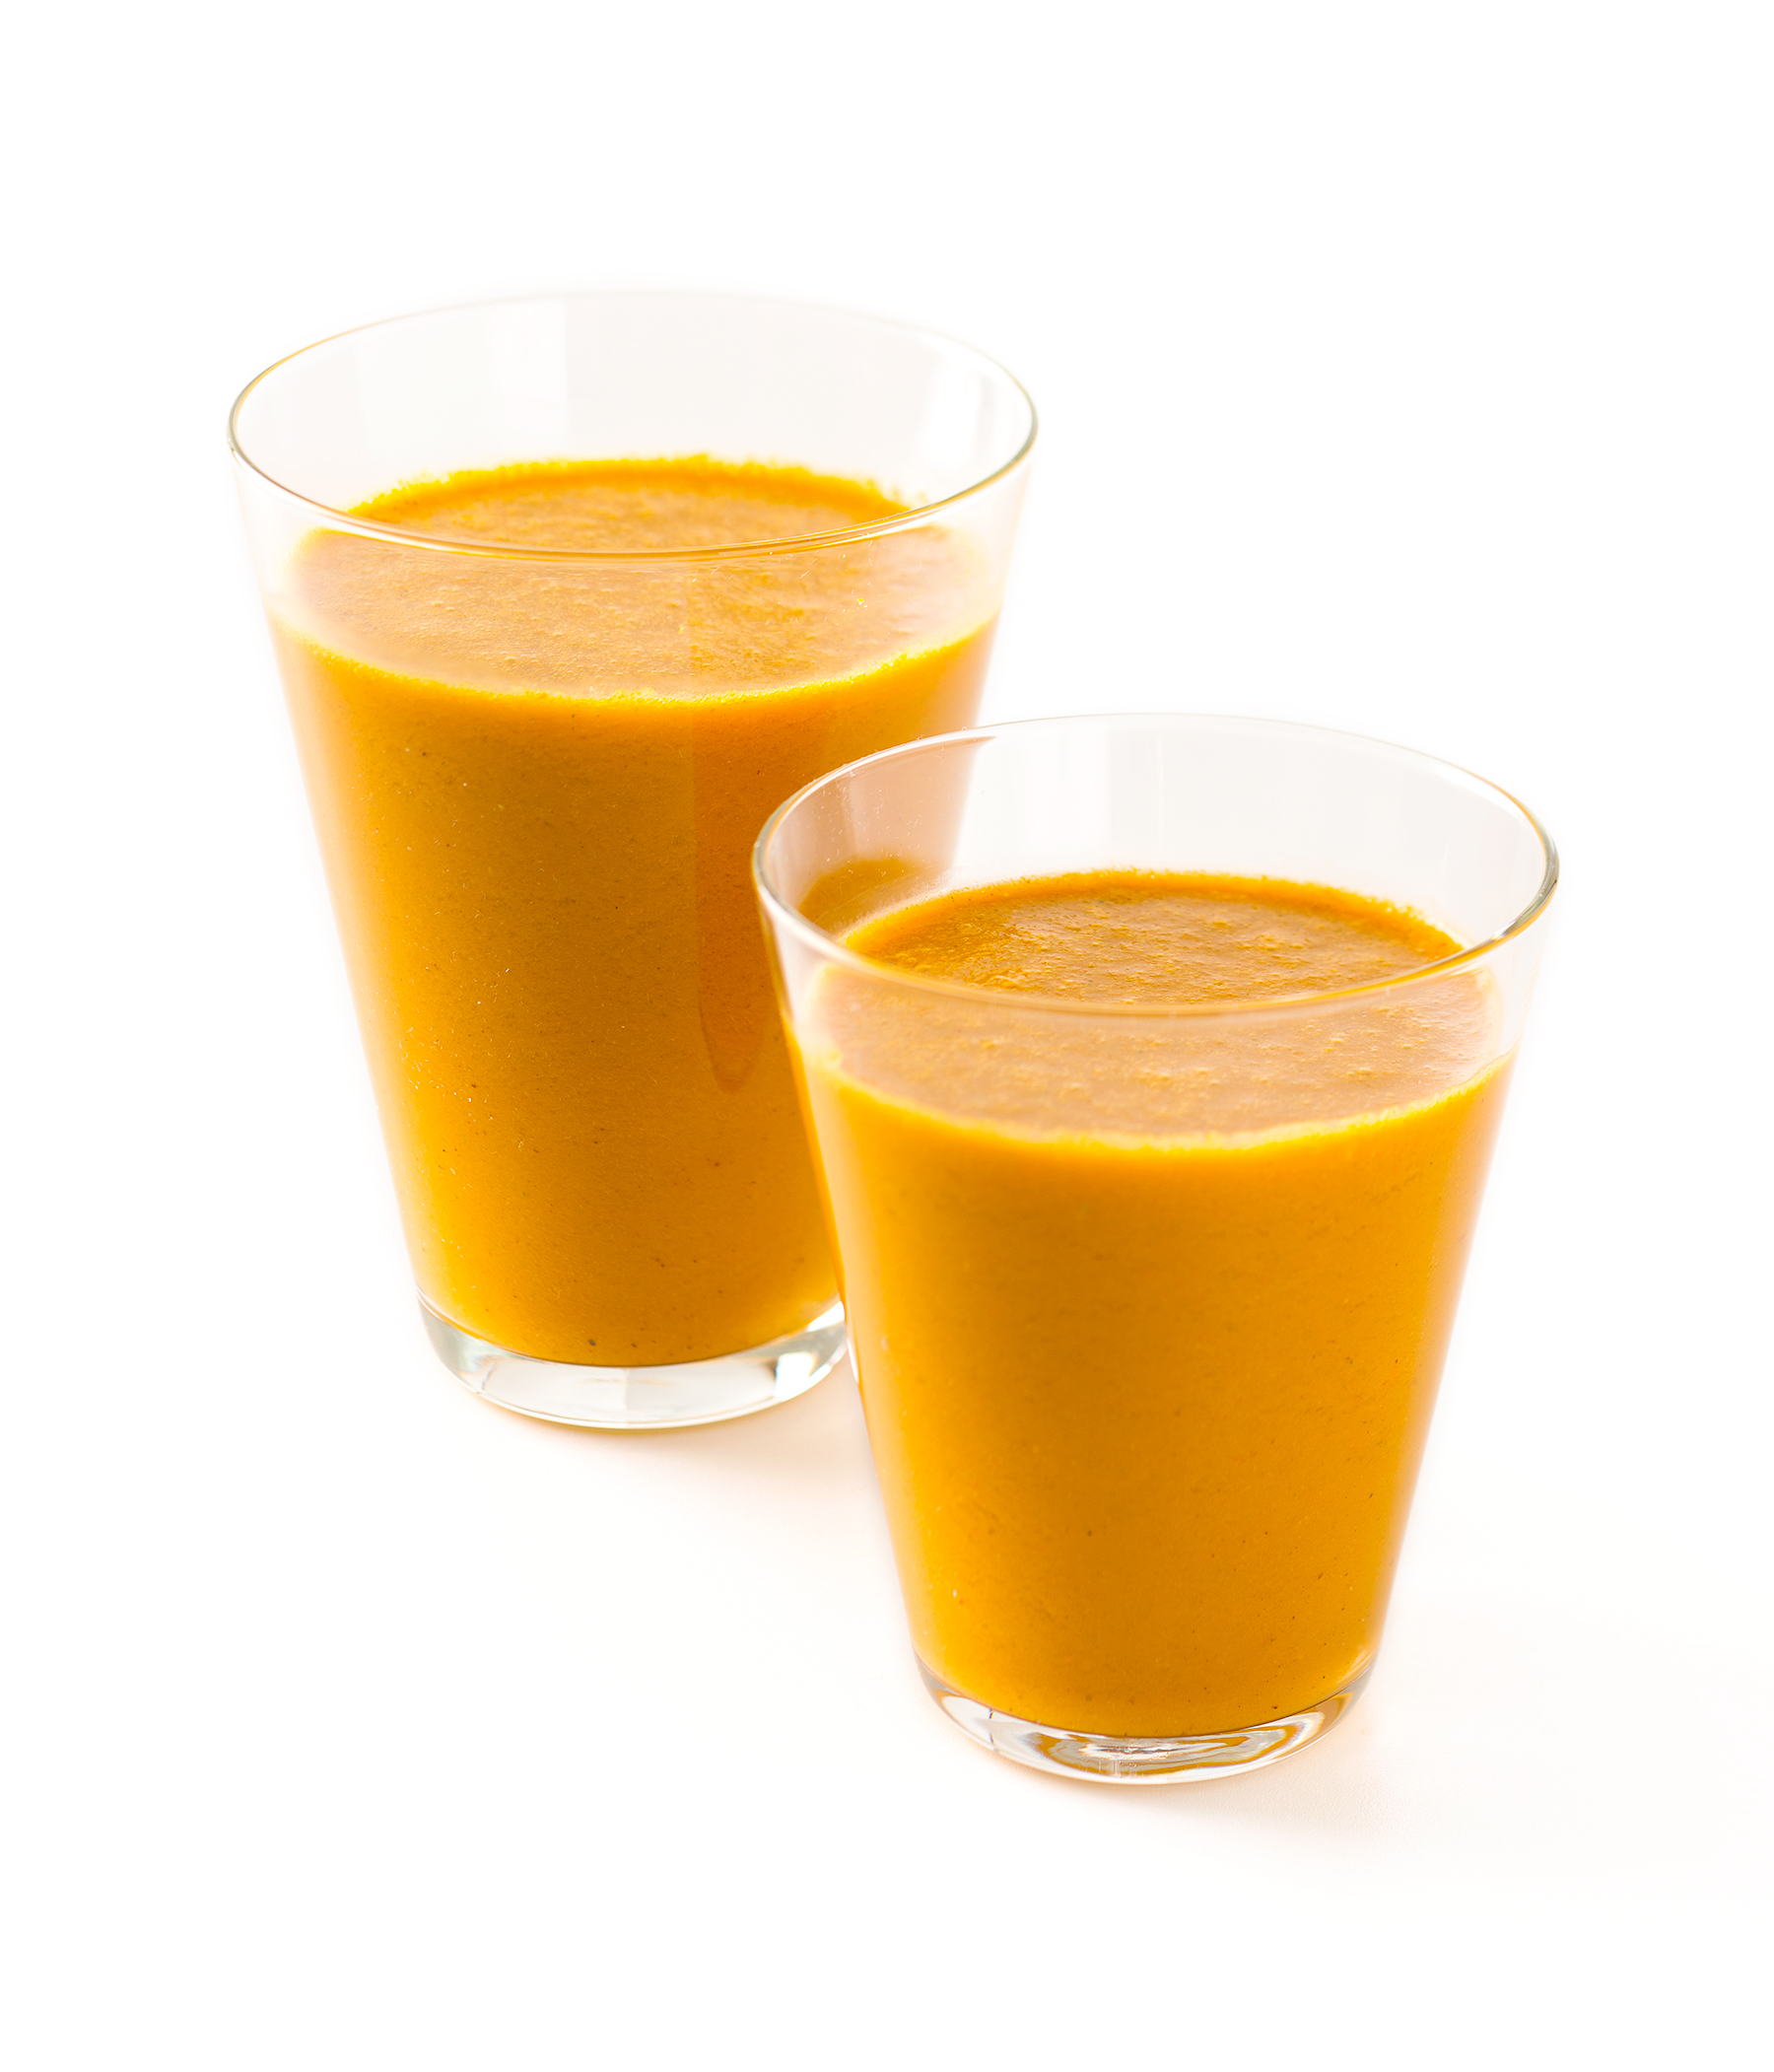 Two Carrot-Orange Smoothies